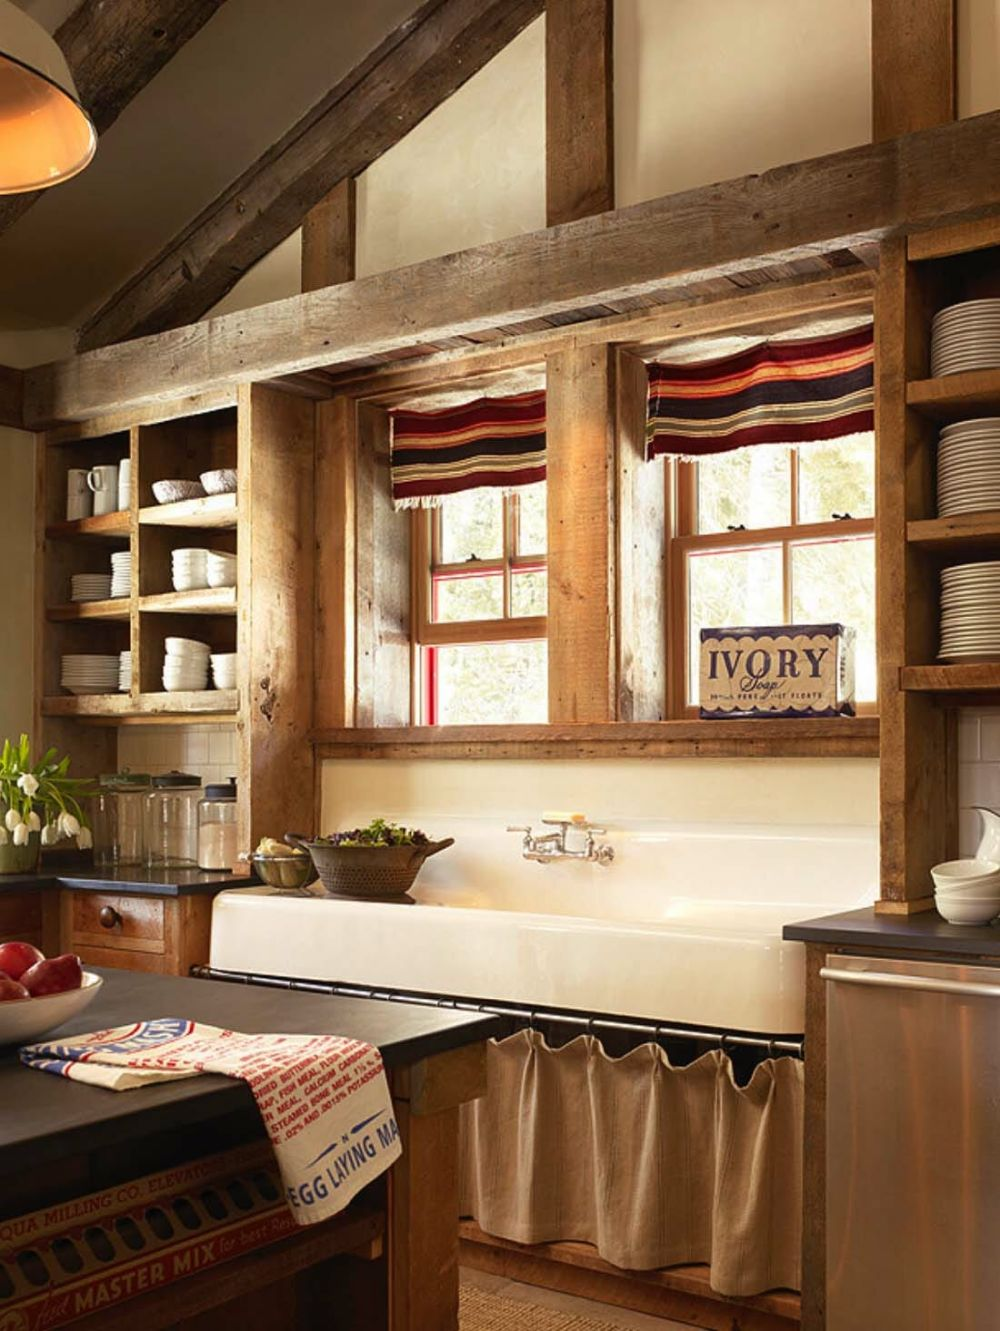 The kitchen has a great layout and features open cabinets and a large farmhouse-style sink